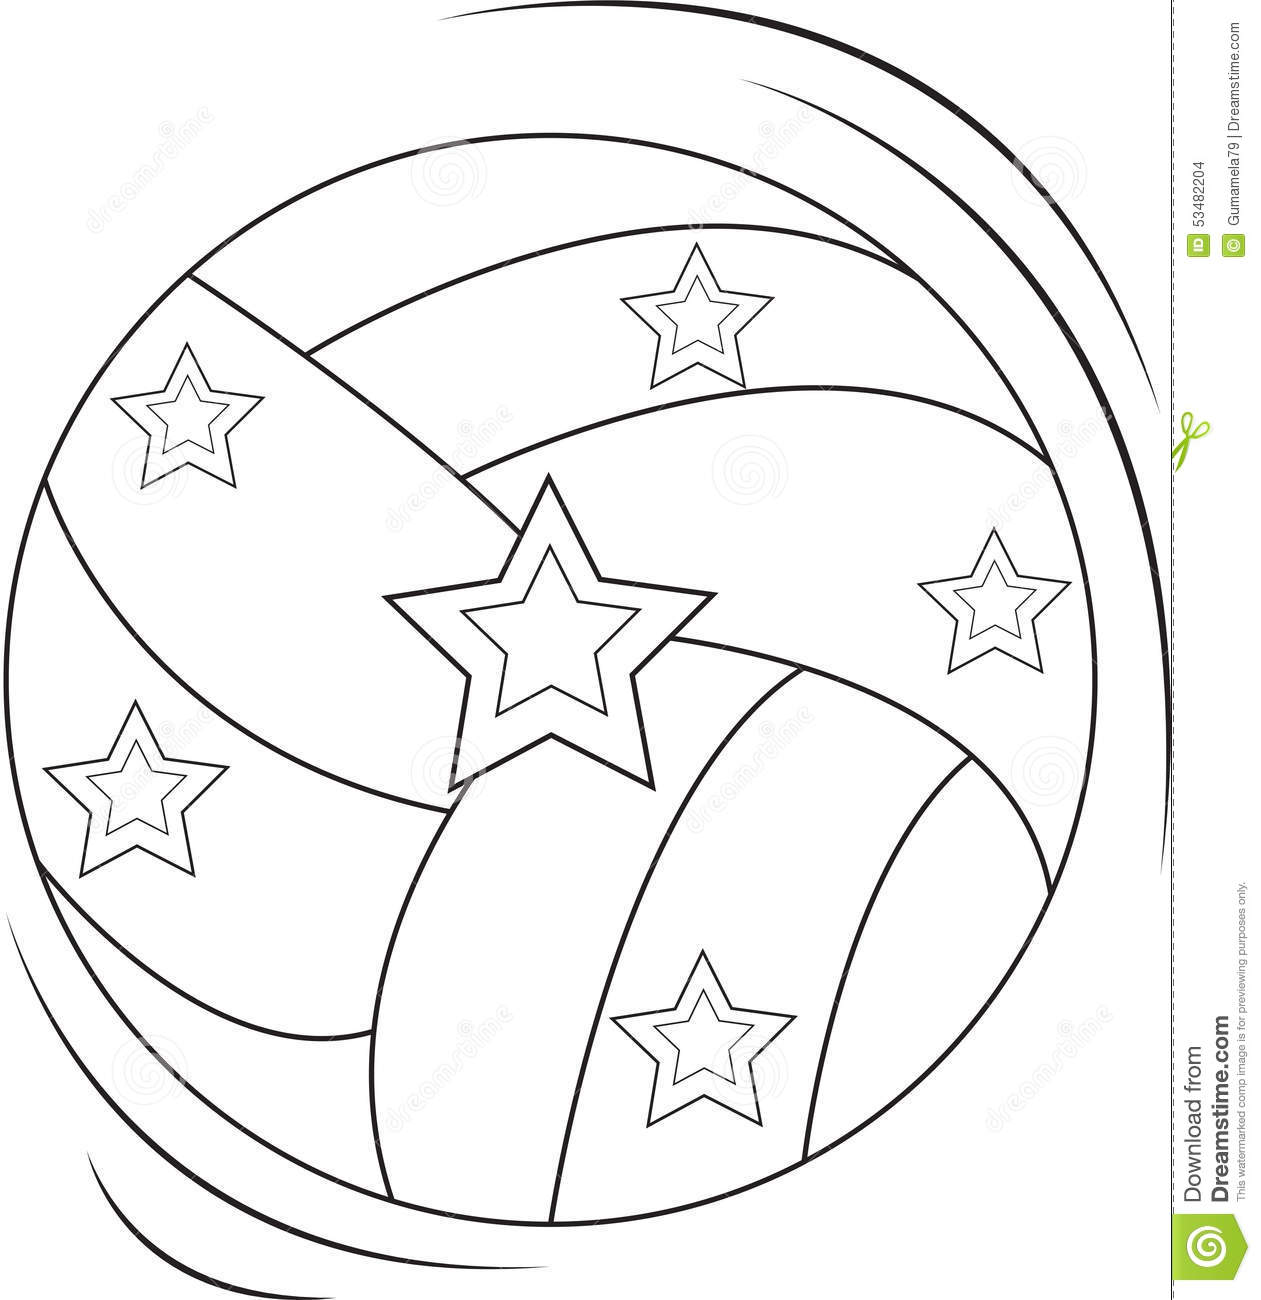 Volleyball Coloring Page Stock Illustration Image 53482204